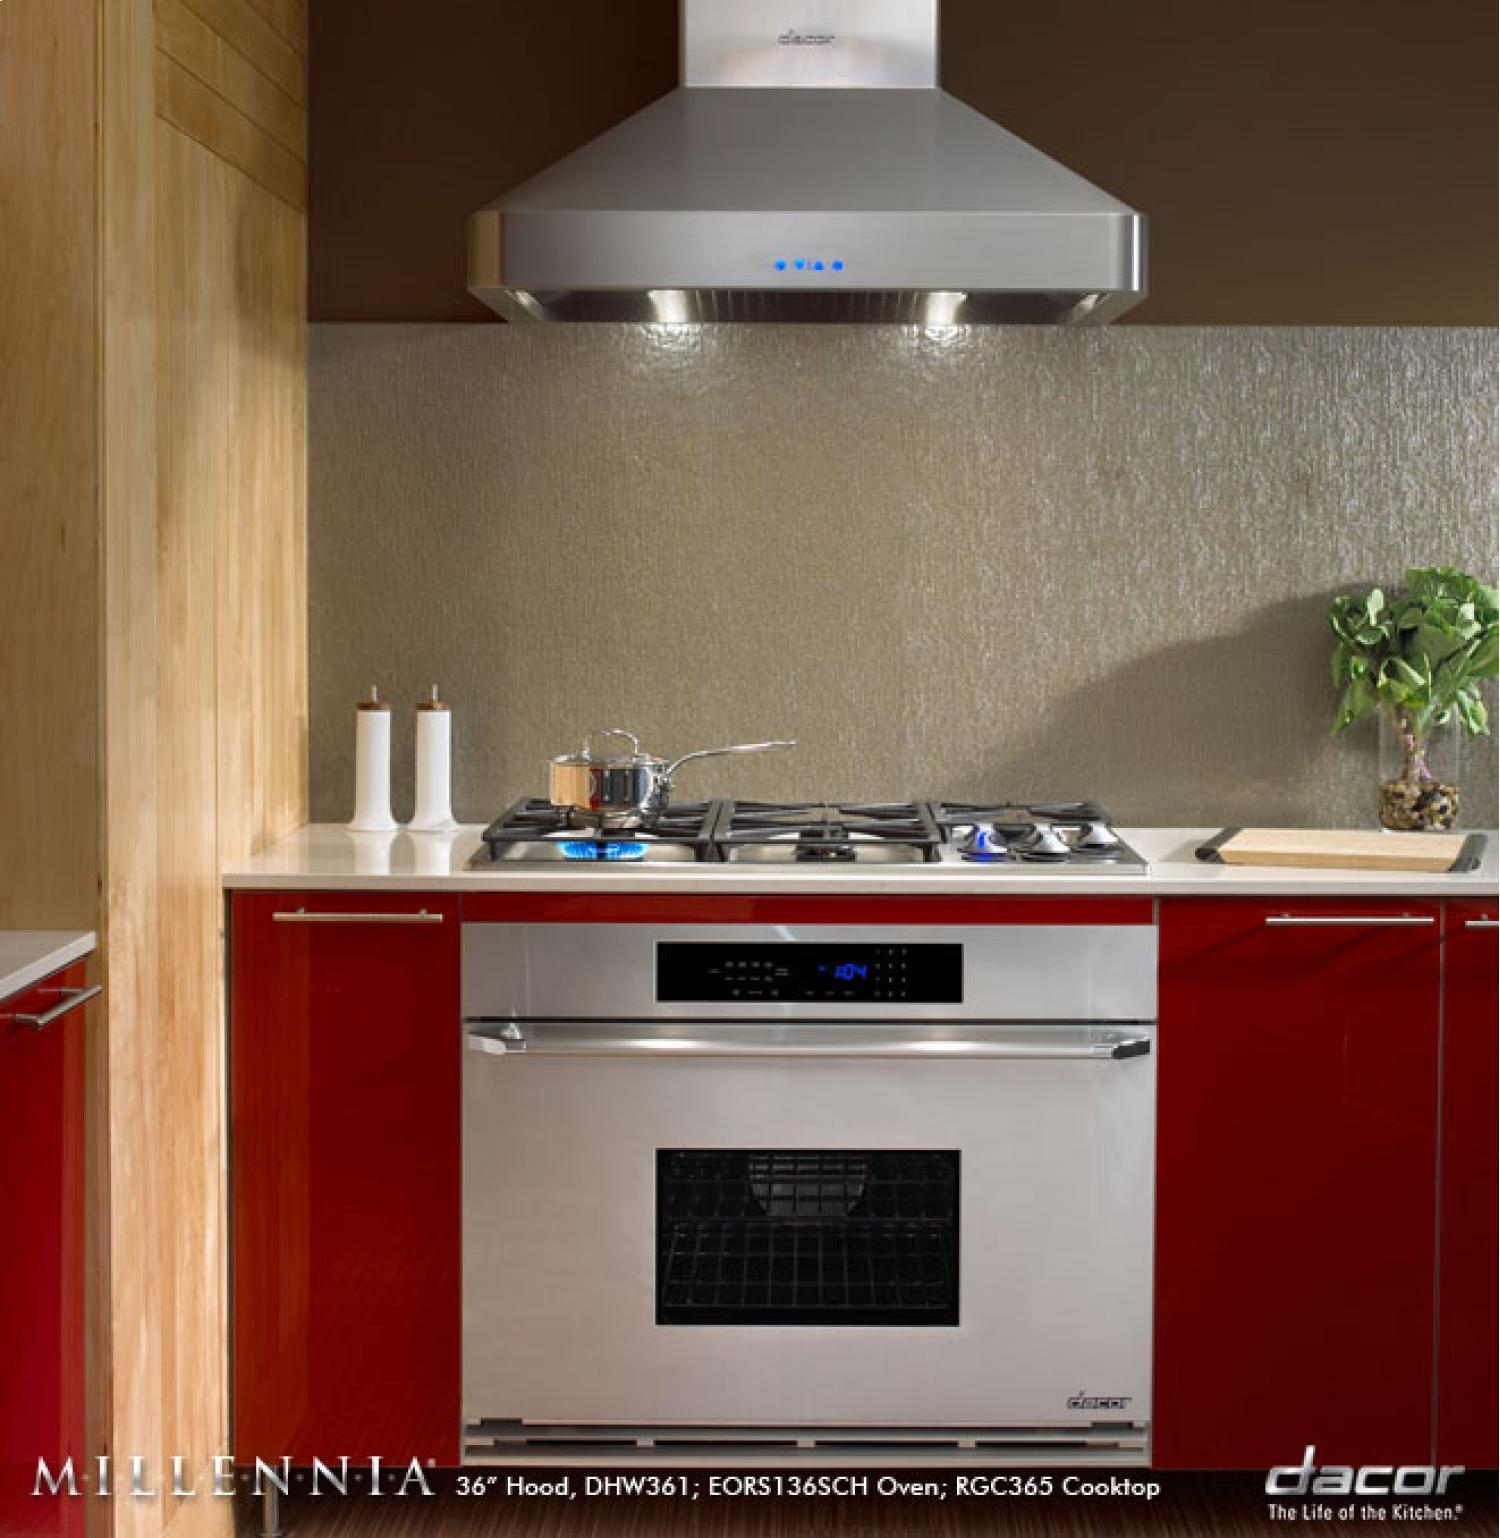 Dacor Dhw361 36 Quot Wall Mount Chimney Range Hood With 600